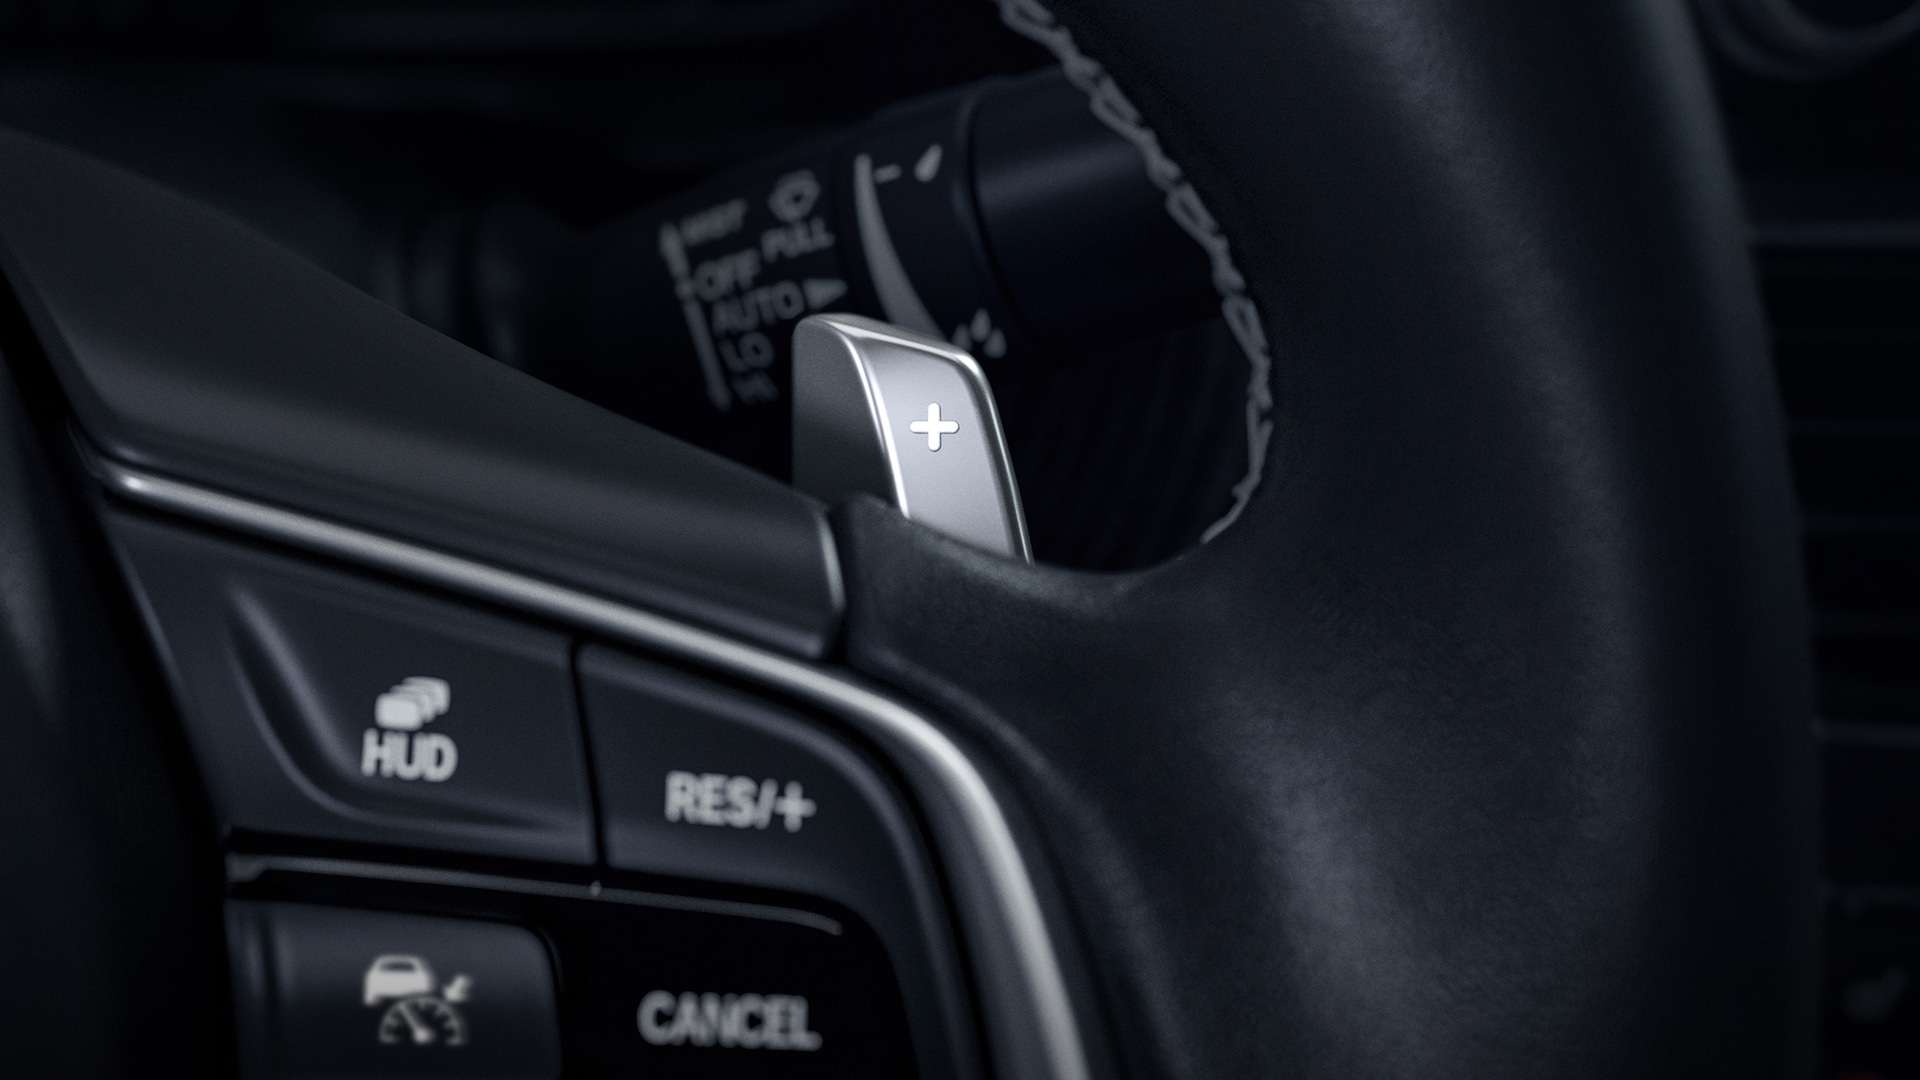 Steering wheel-mounted paddle shifter detail in the 2021 Honda Accord Touring 2.0T.